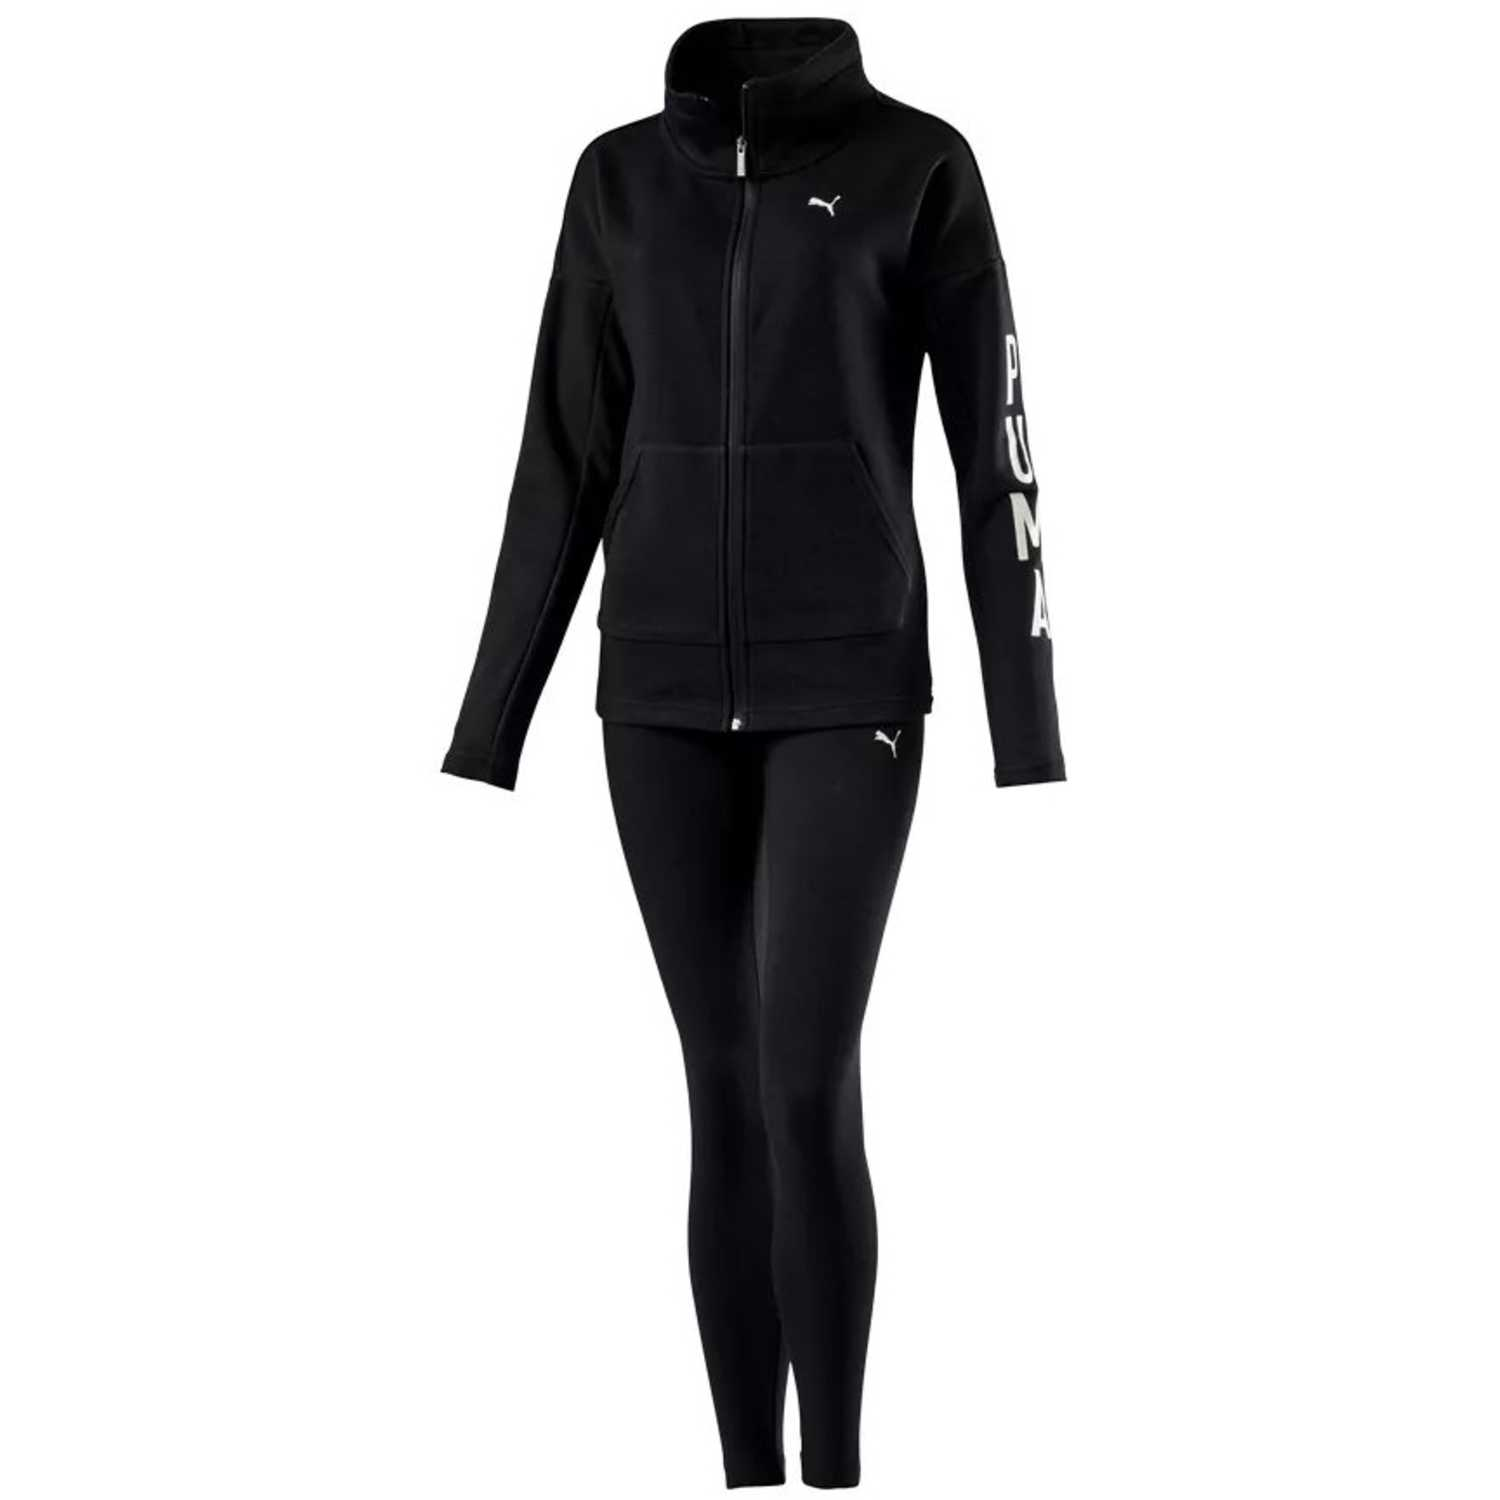 Buzo de Mujer Puma Negro graphic legging sweat suit